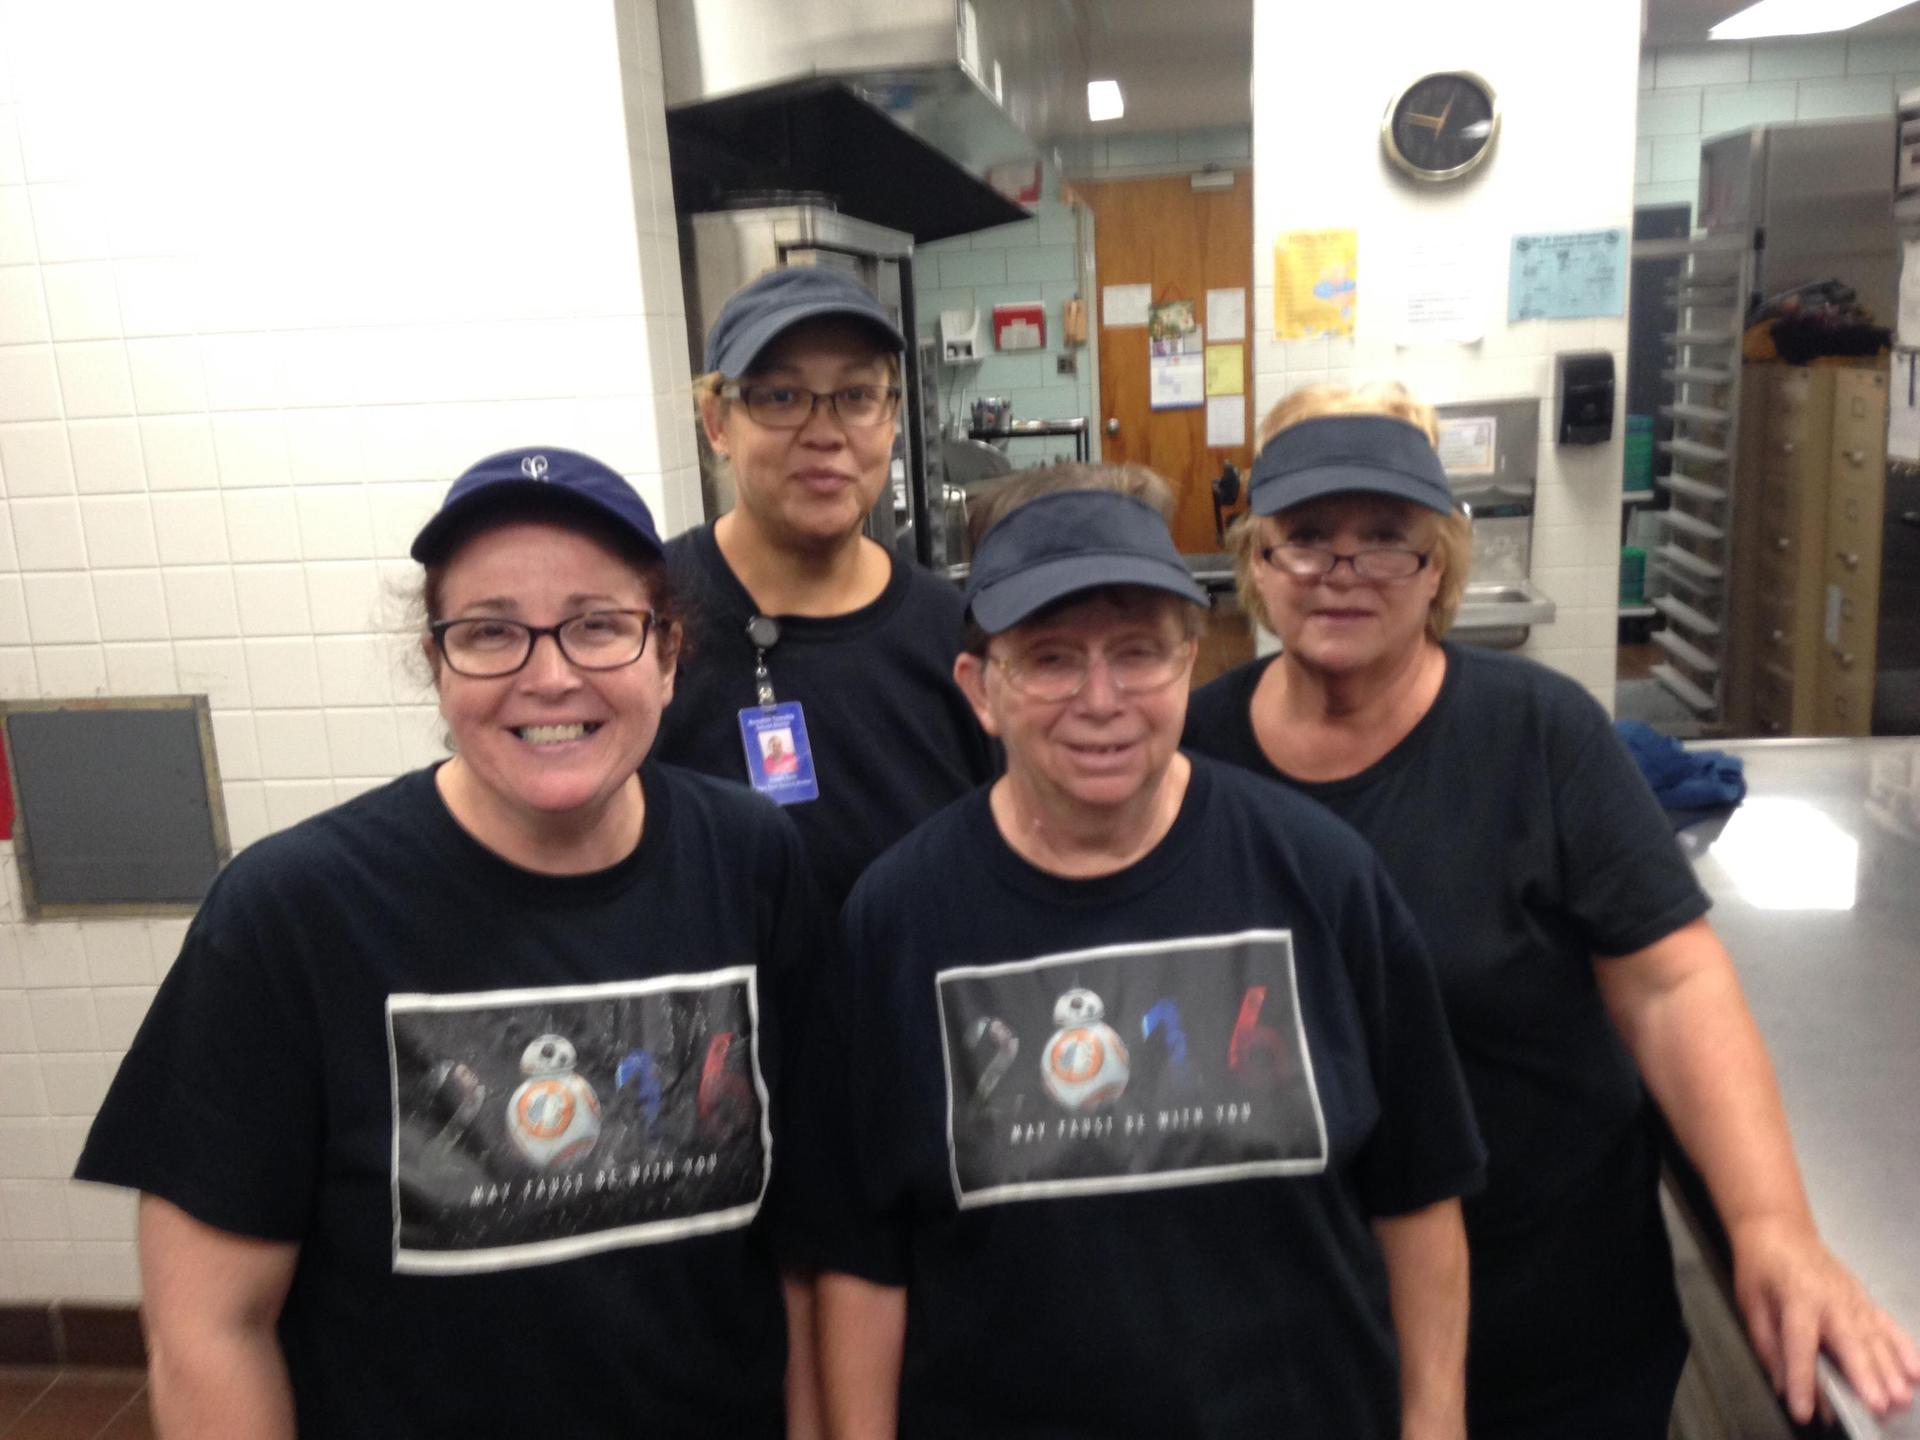 Faust Cafeteria staff helps Kindergarten students learn colors, by wearing specific colored shirts each day, pictured are black shirts.